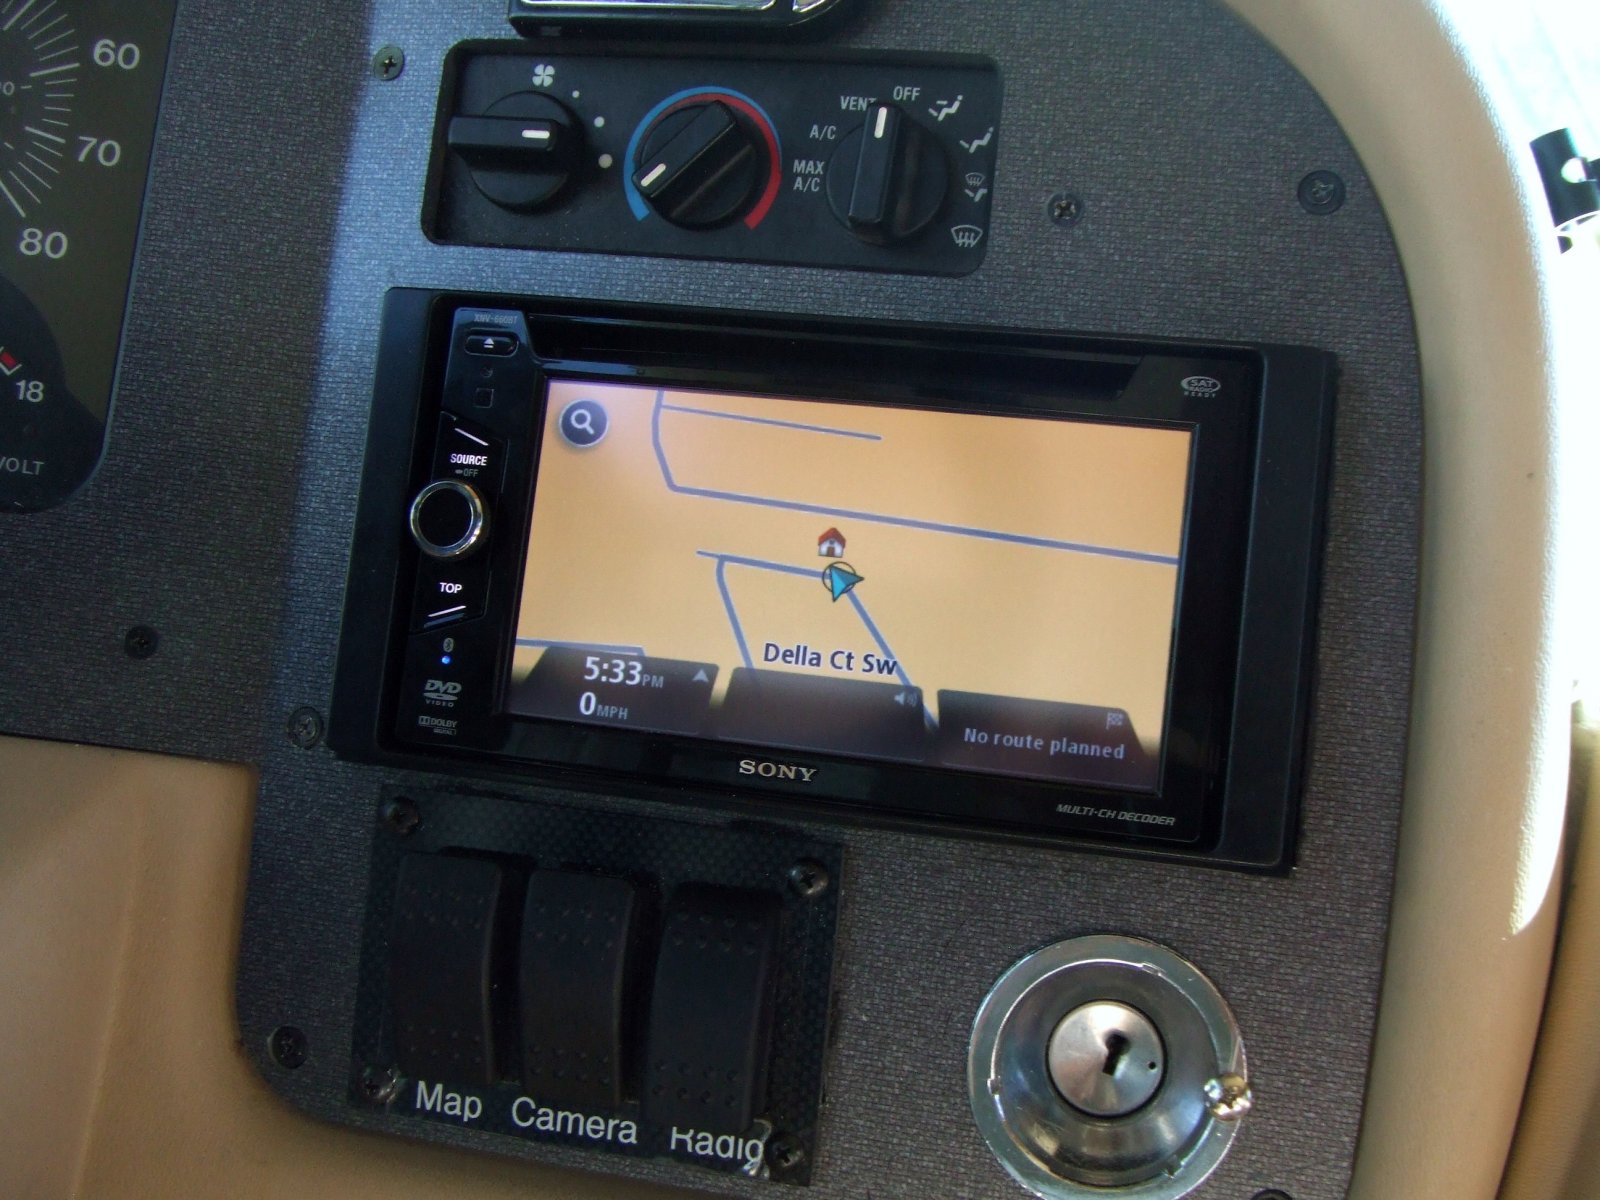 Click image for larger version  Name:TomTom GPS.jpg Views:32 Size:282.8 KB ID:30102